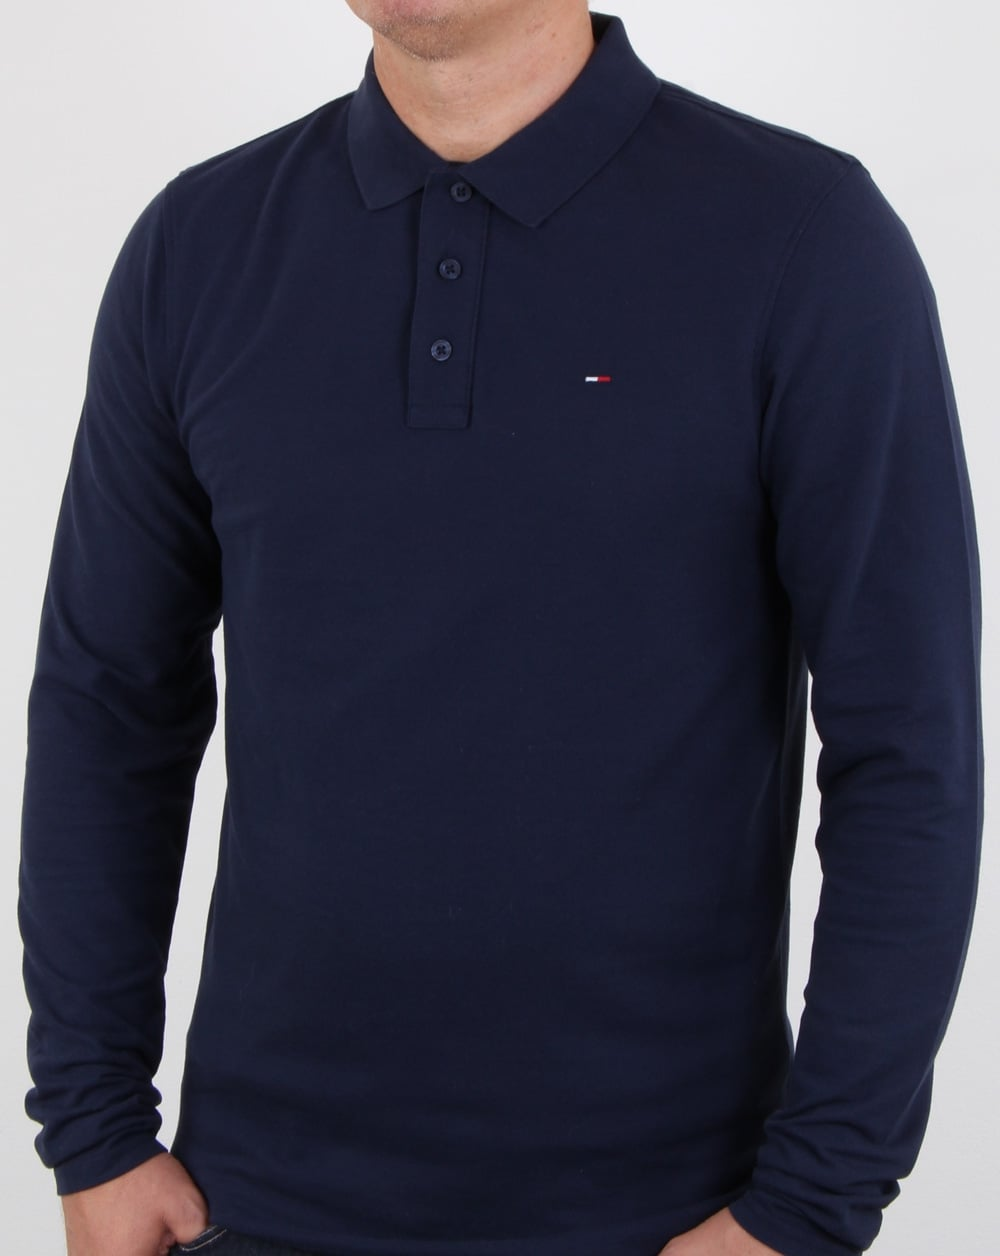 a5f23d7a090ac7 Tommy Hilfiger Long Sleeve Polo Shirt Navy